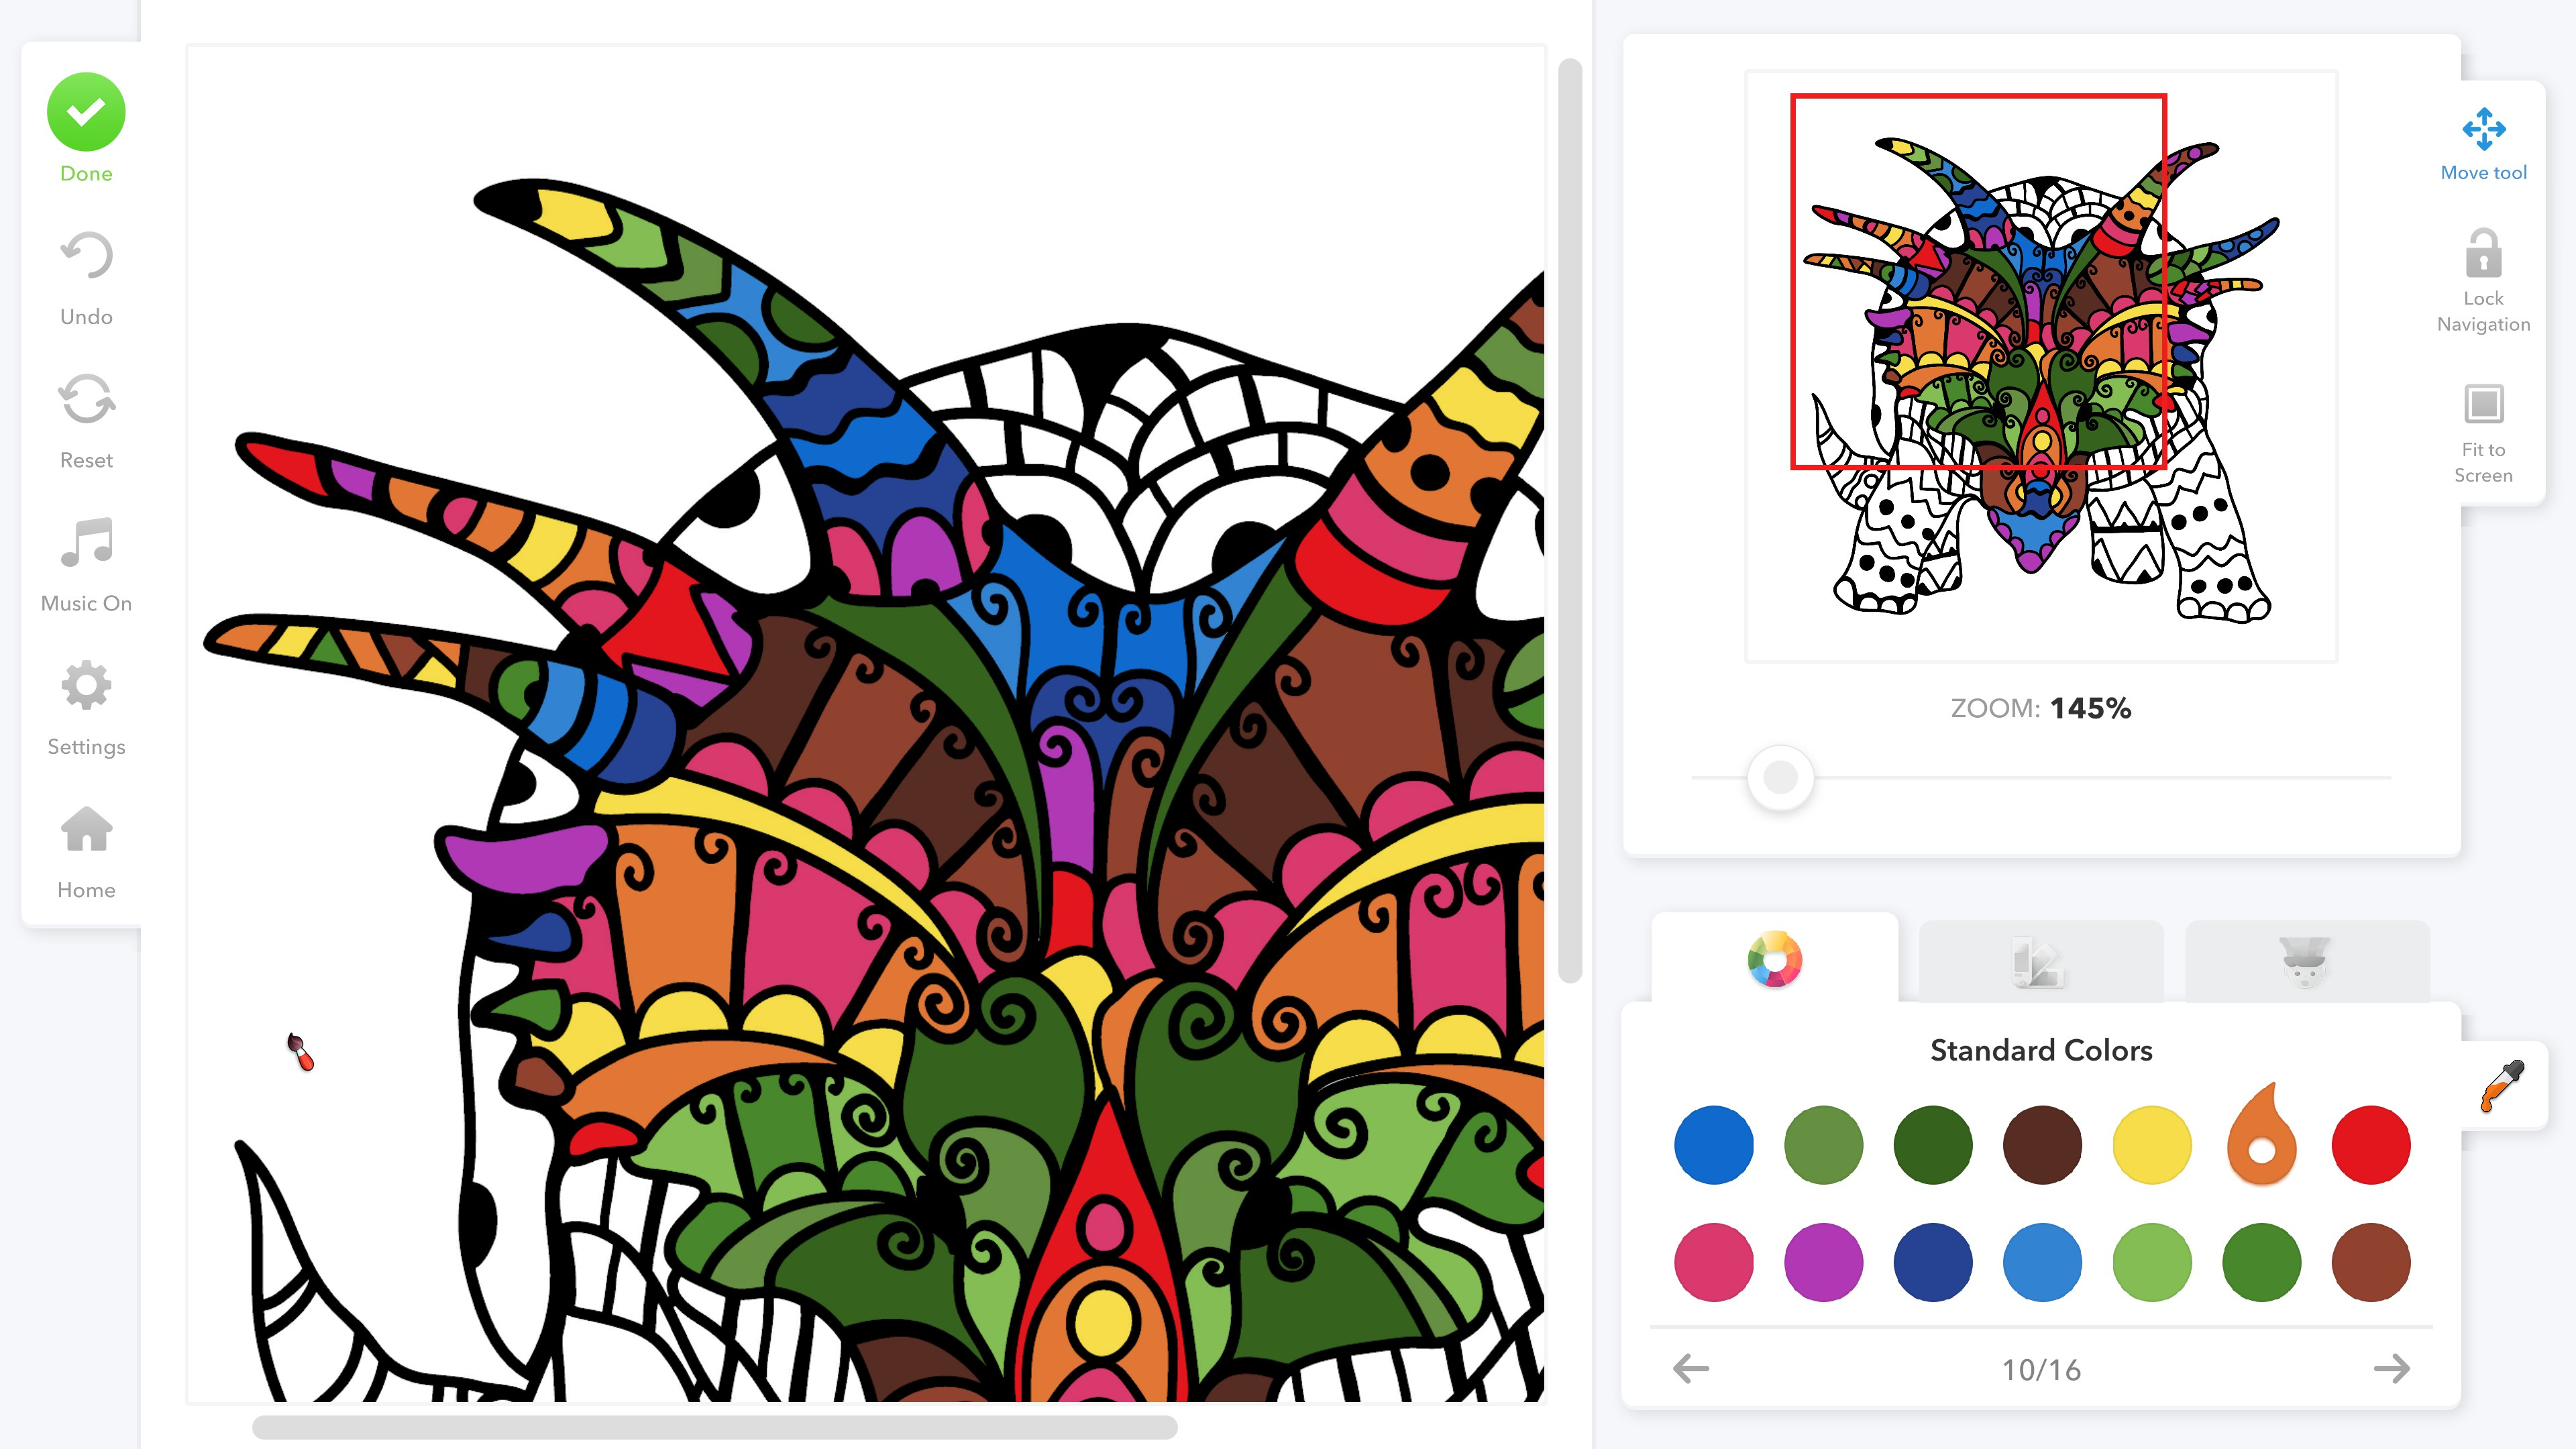 Coloring Book for Adults. A partially completed dinosaur color utilizing a zoom feature for detailed work